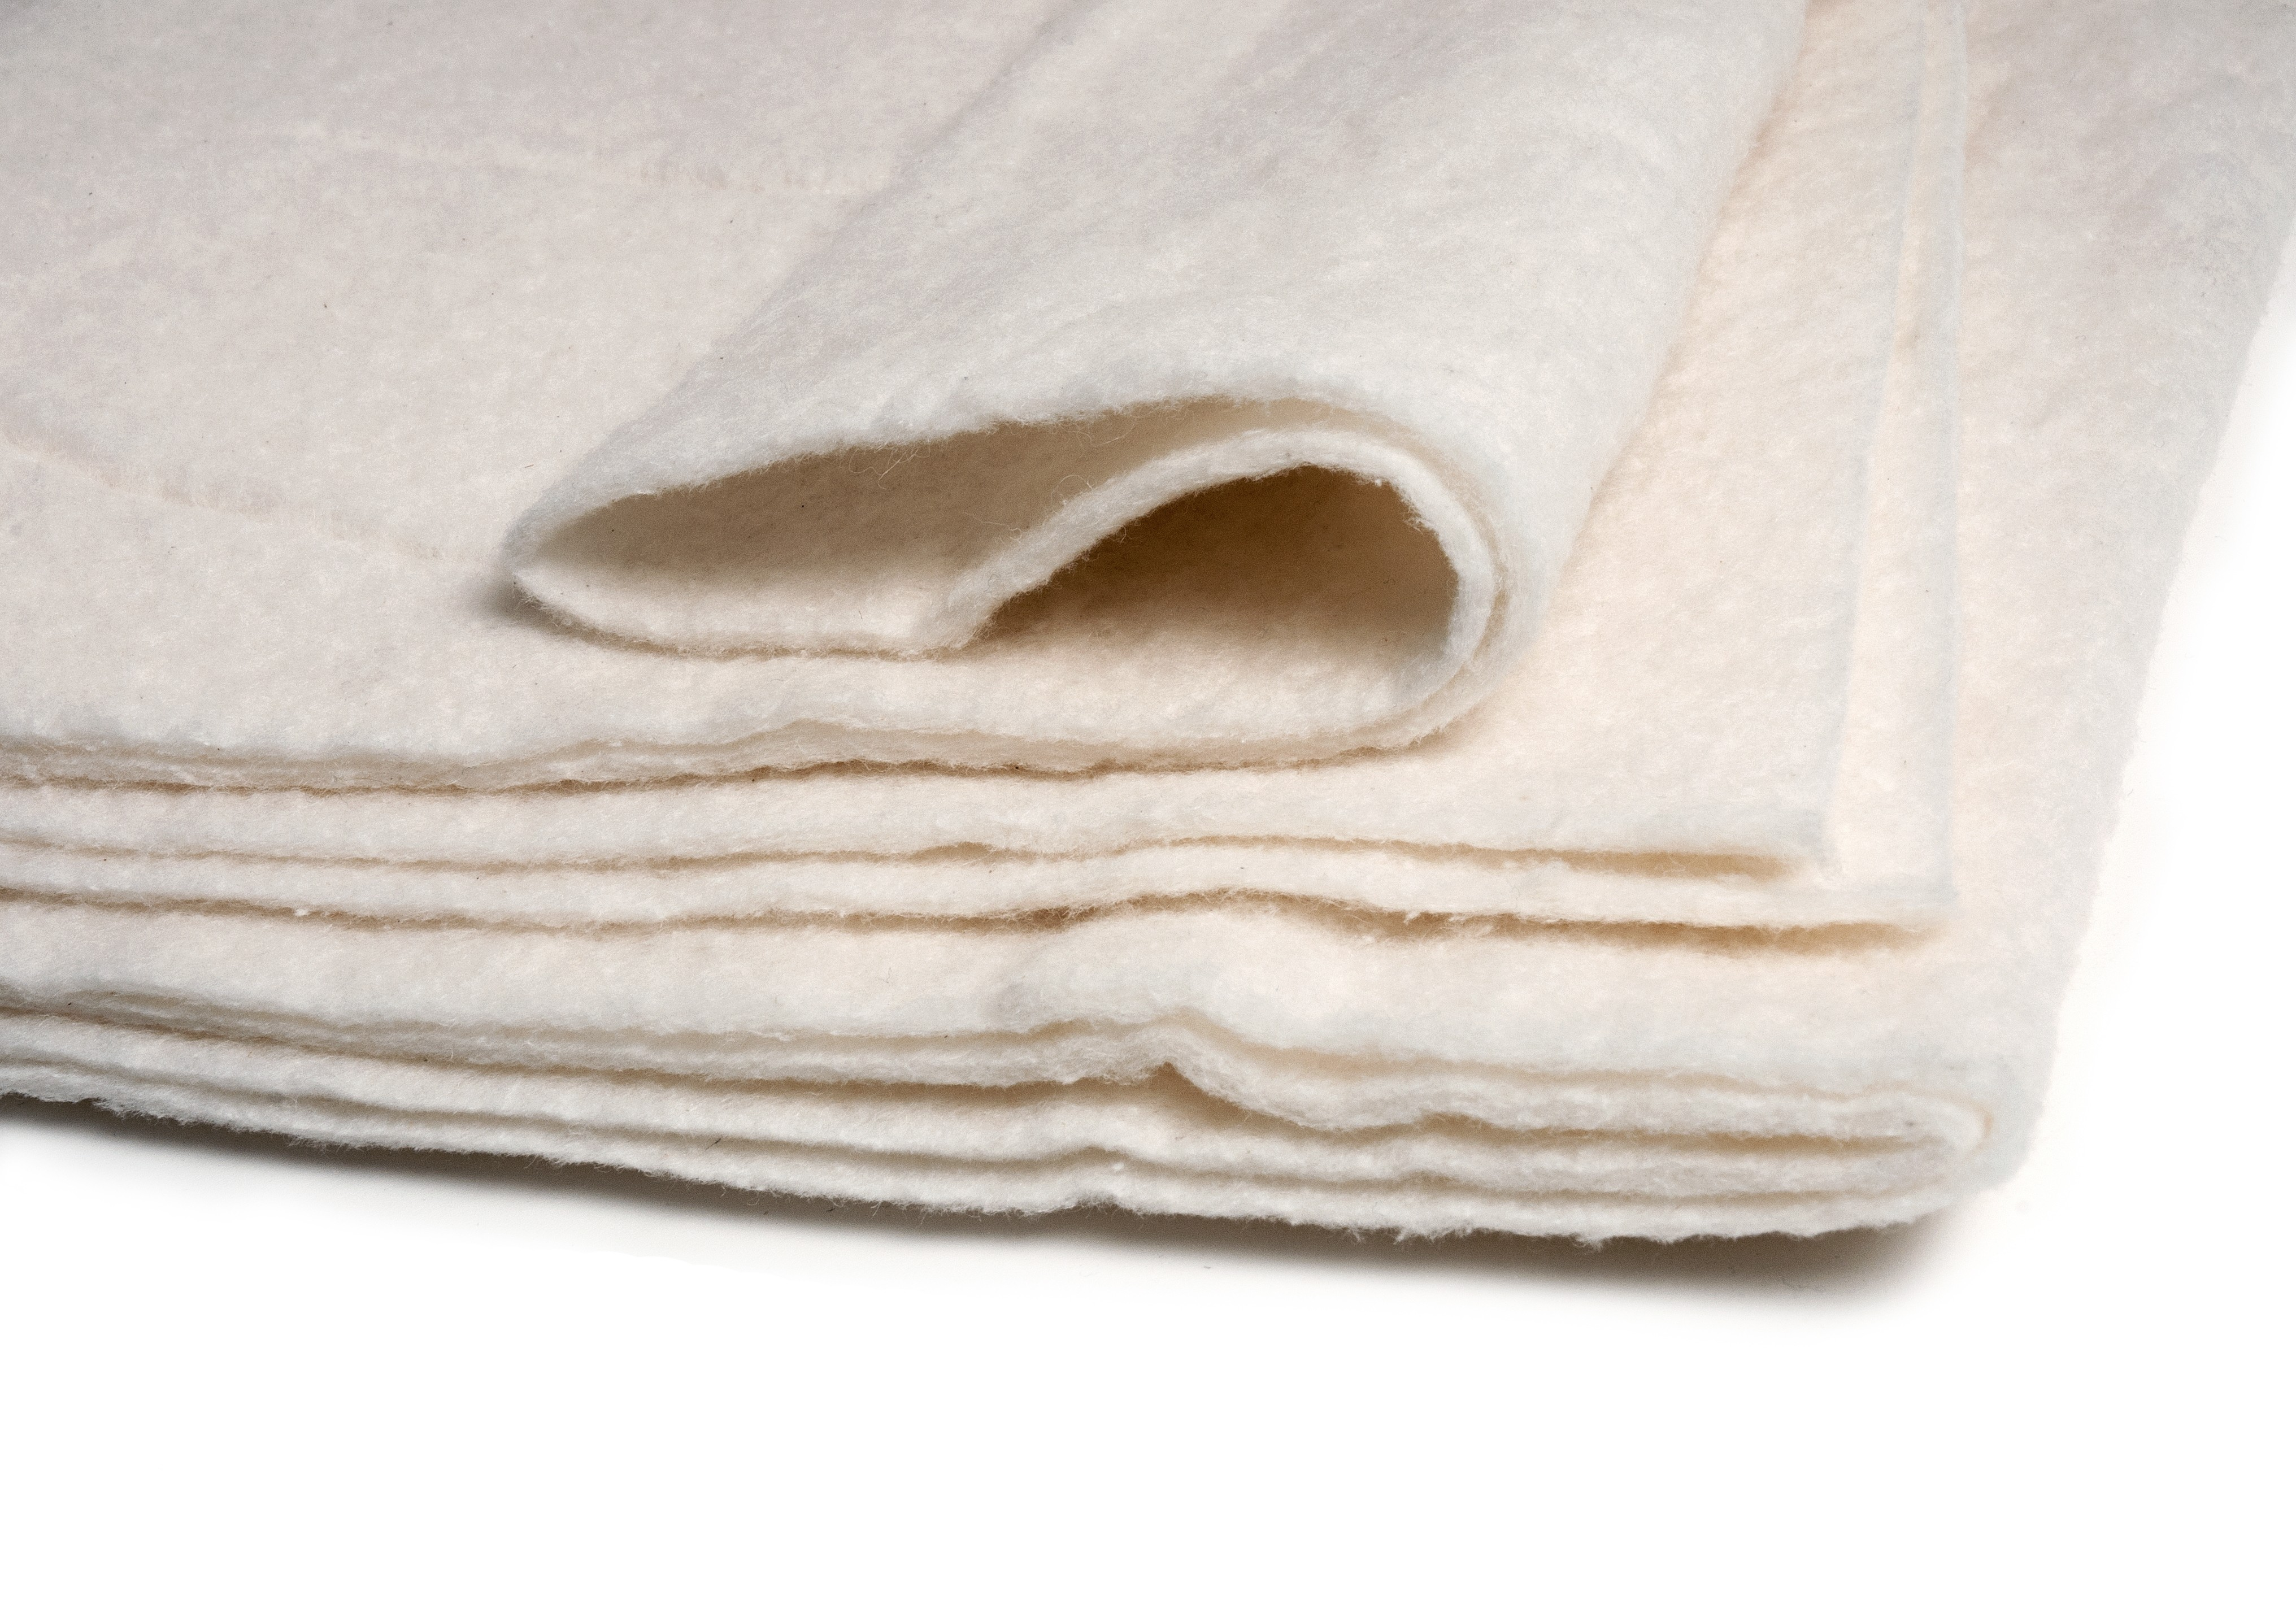 2PCS 45x 60 Inch 100/% Natural Cotton Quilt Batting for Quilting Fabric Sewing Thin Crib